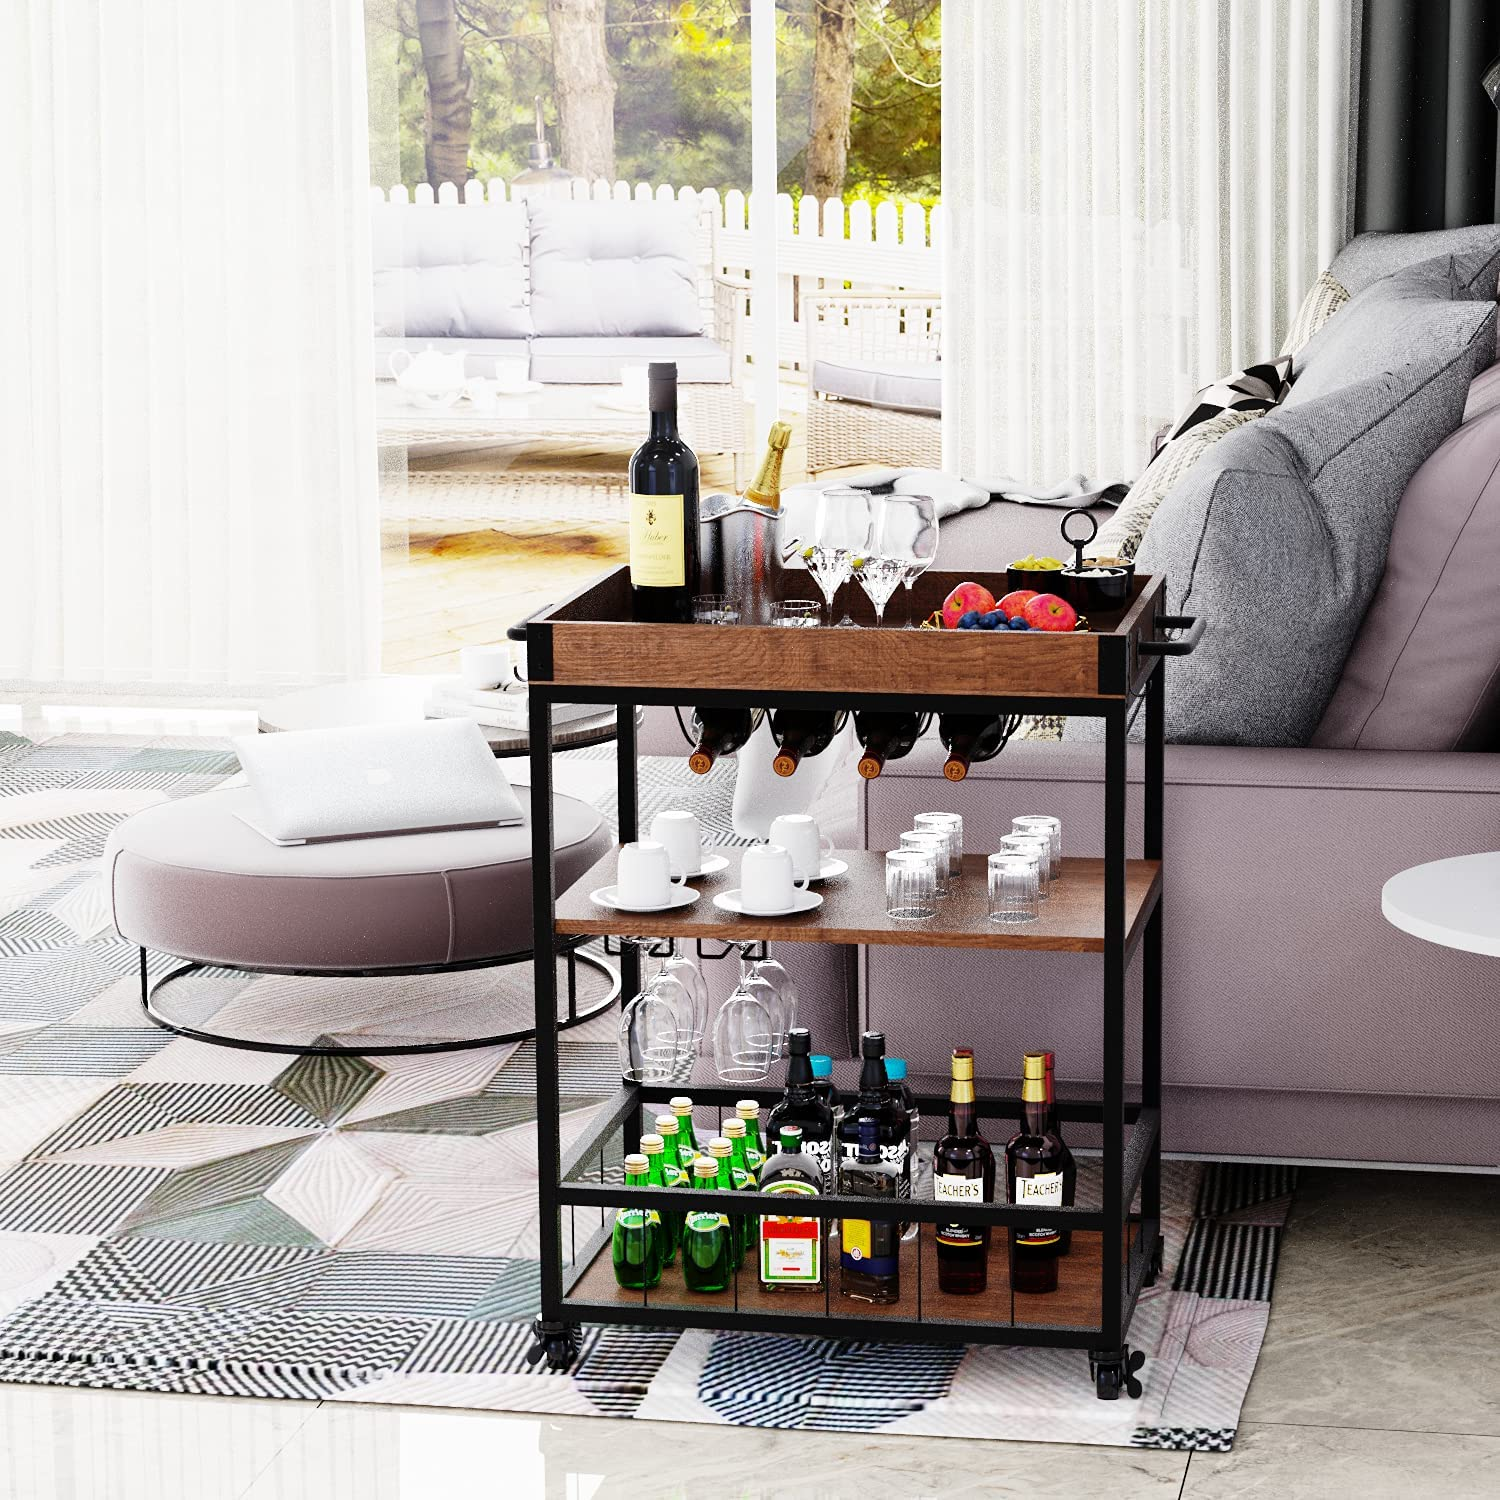 4 EVER WINNER Wine Bar Cart, Kitchen Serving Cart on Wheels, Bar Carts for Home with Storage, Removable Top Tray, Metal Handle Rack Glass Holder, Rustic Industrial and Black